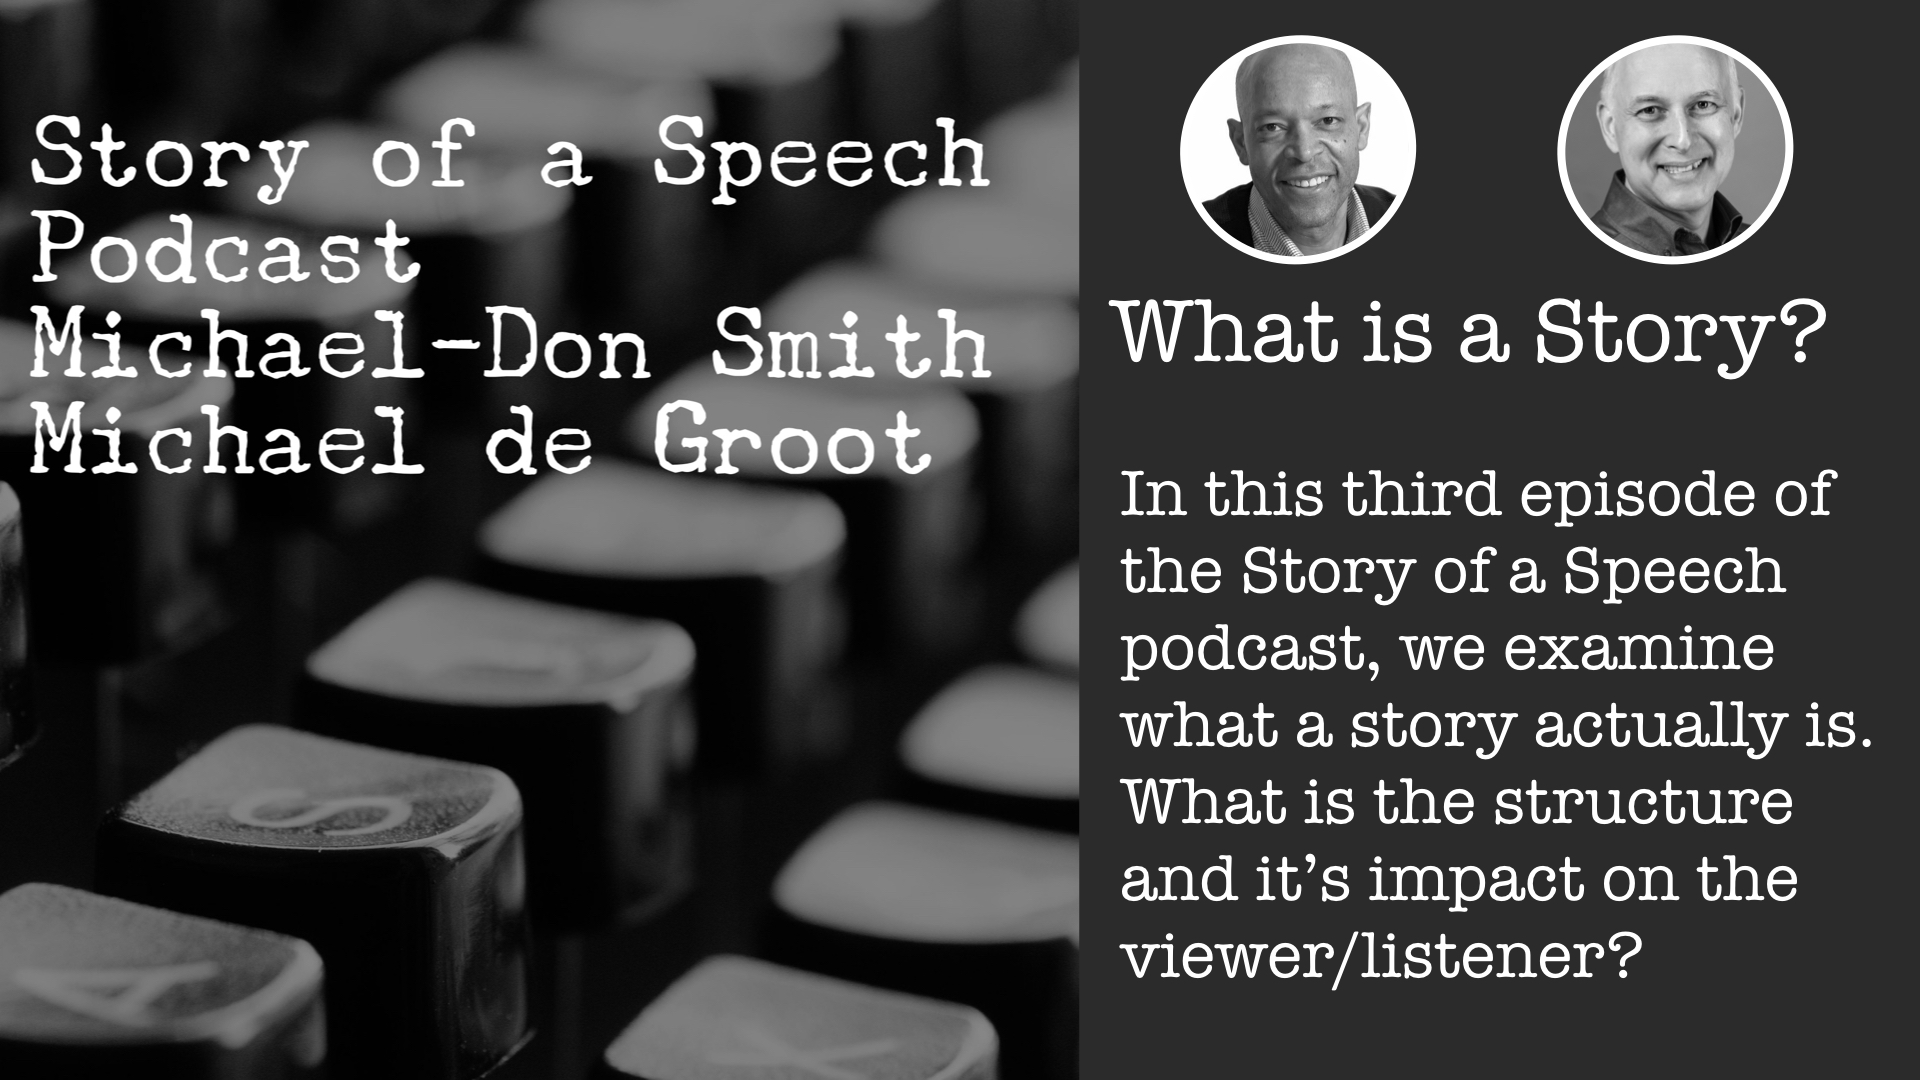 Story of a Speech Podcast - episode 0003.jpeg